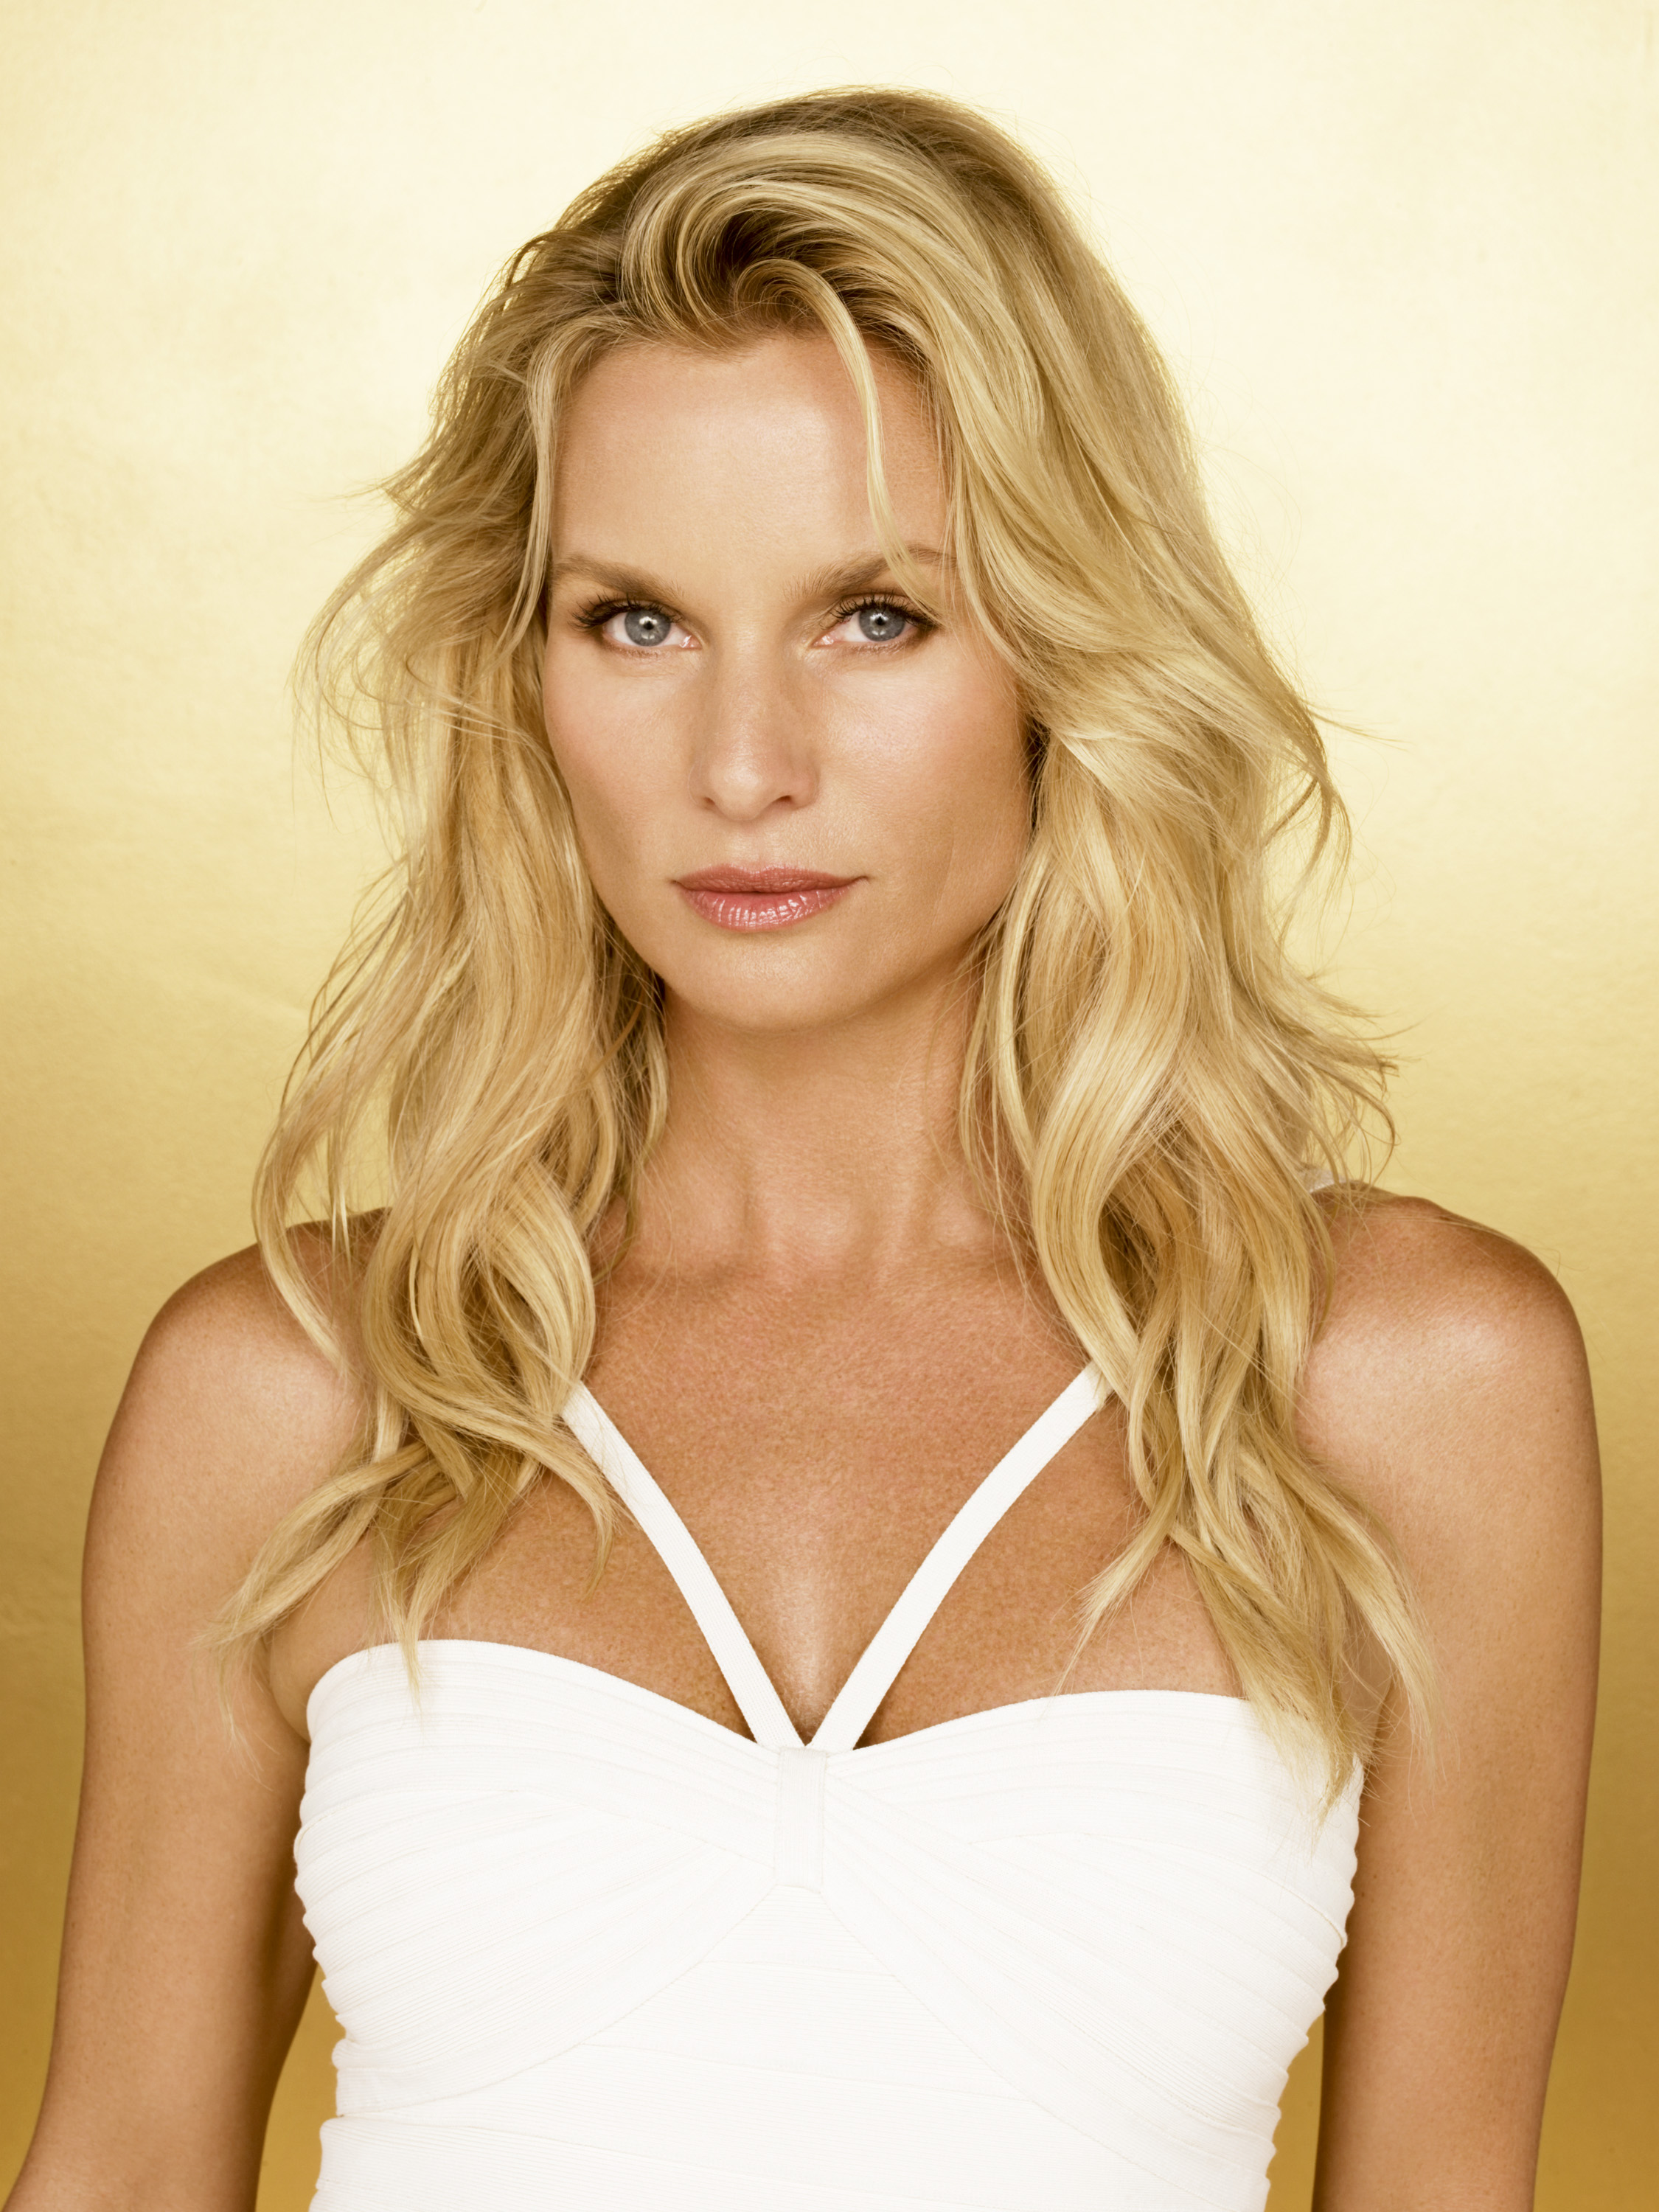 Nicollette Sheridan: A Battered Housewife